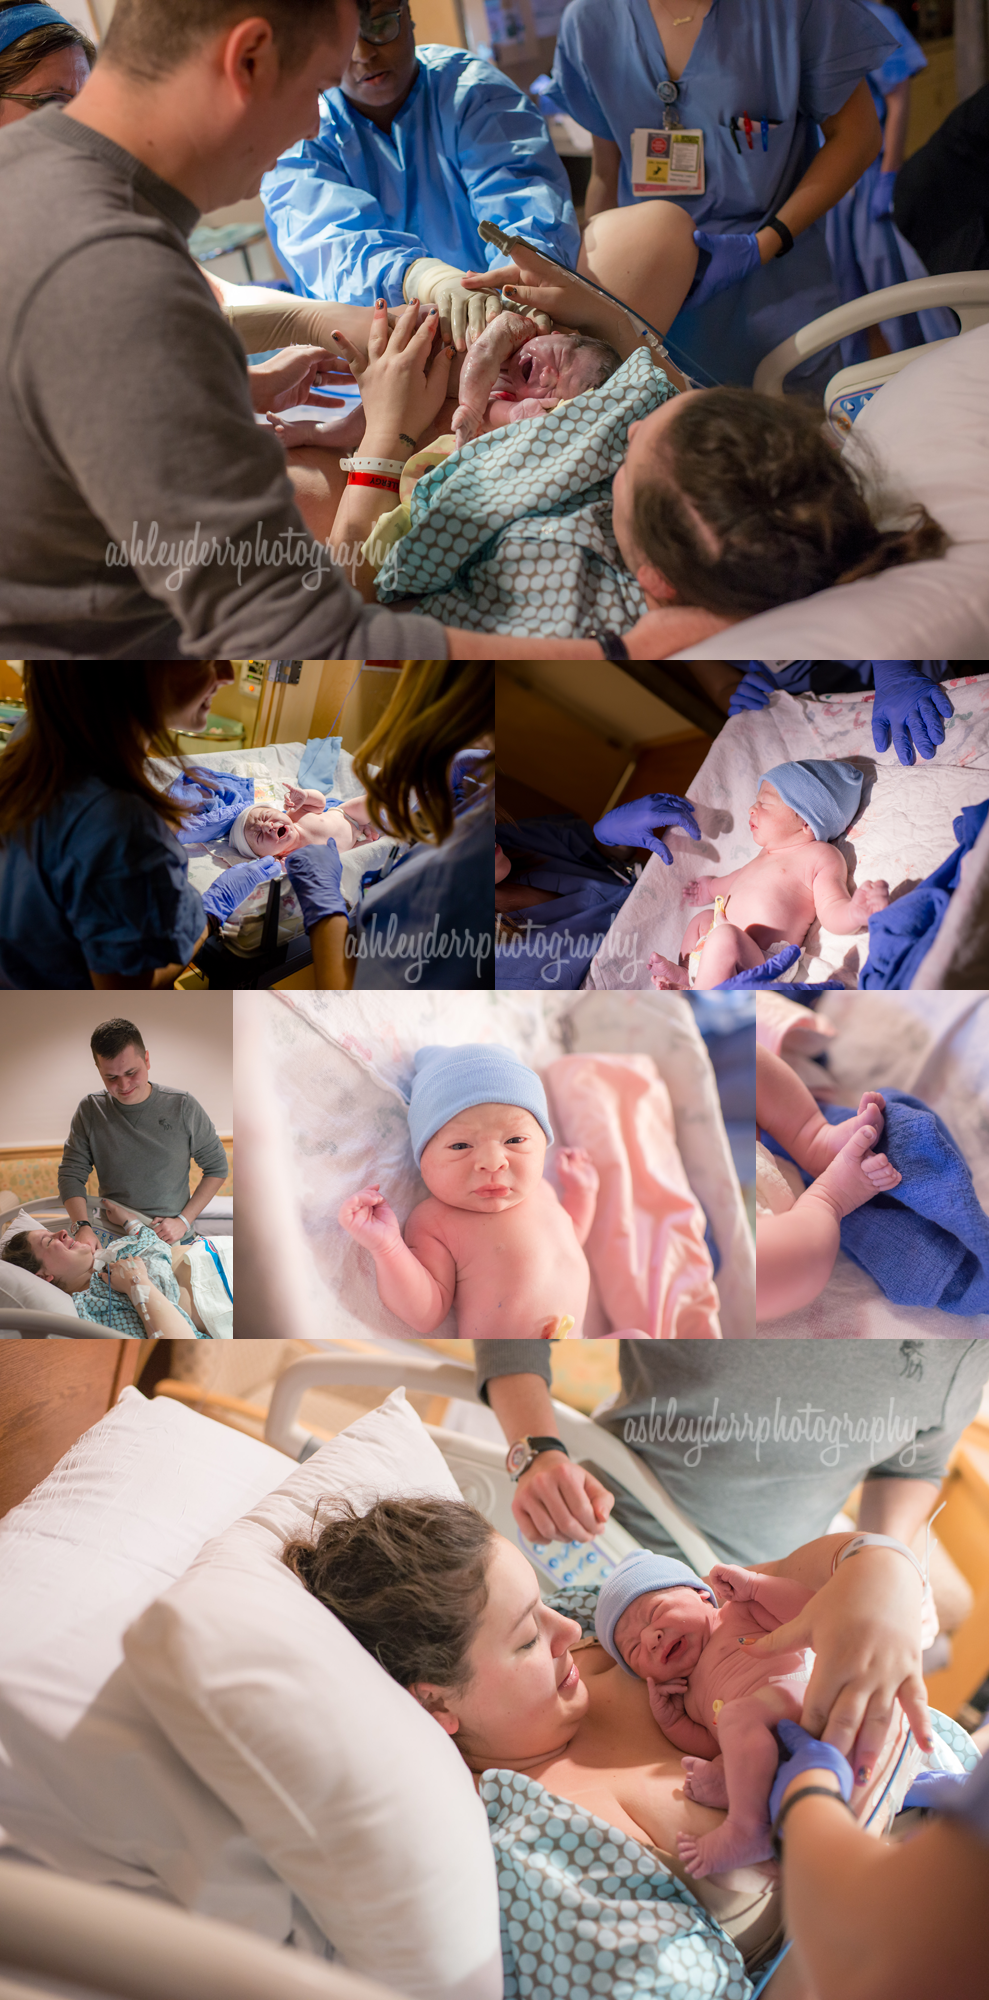 magee pittsburgh birth delivery photographer